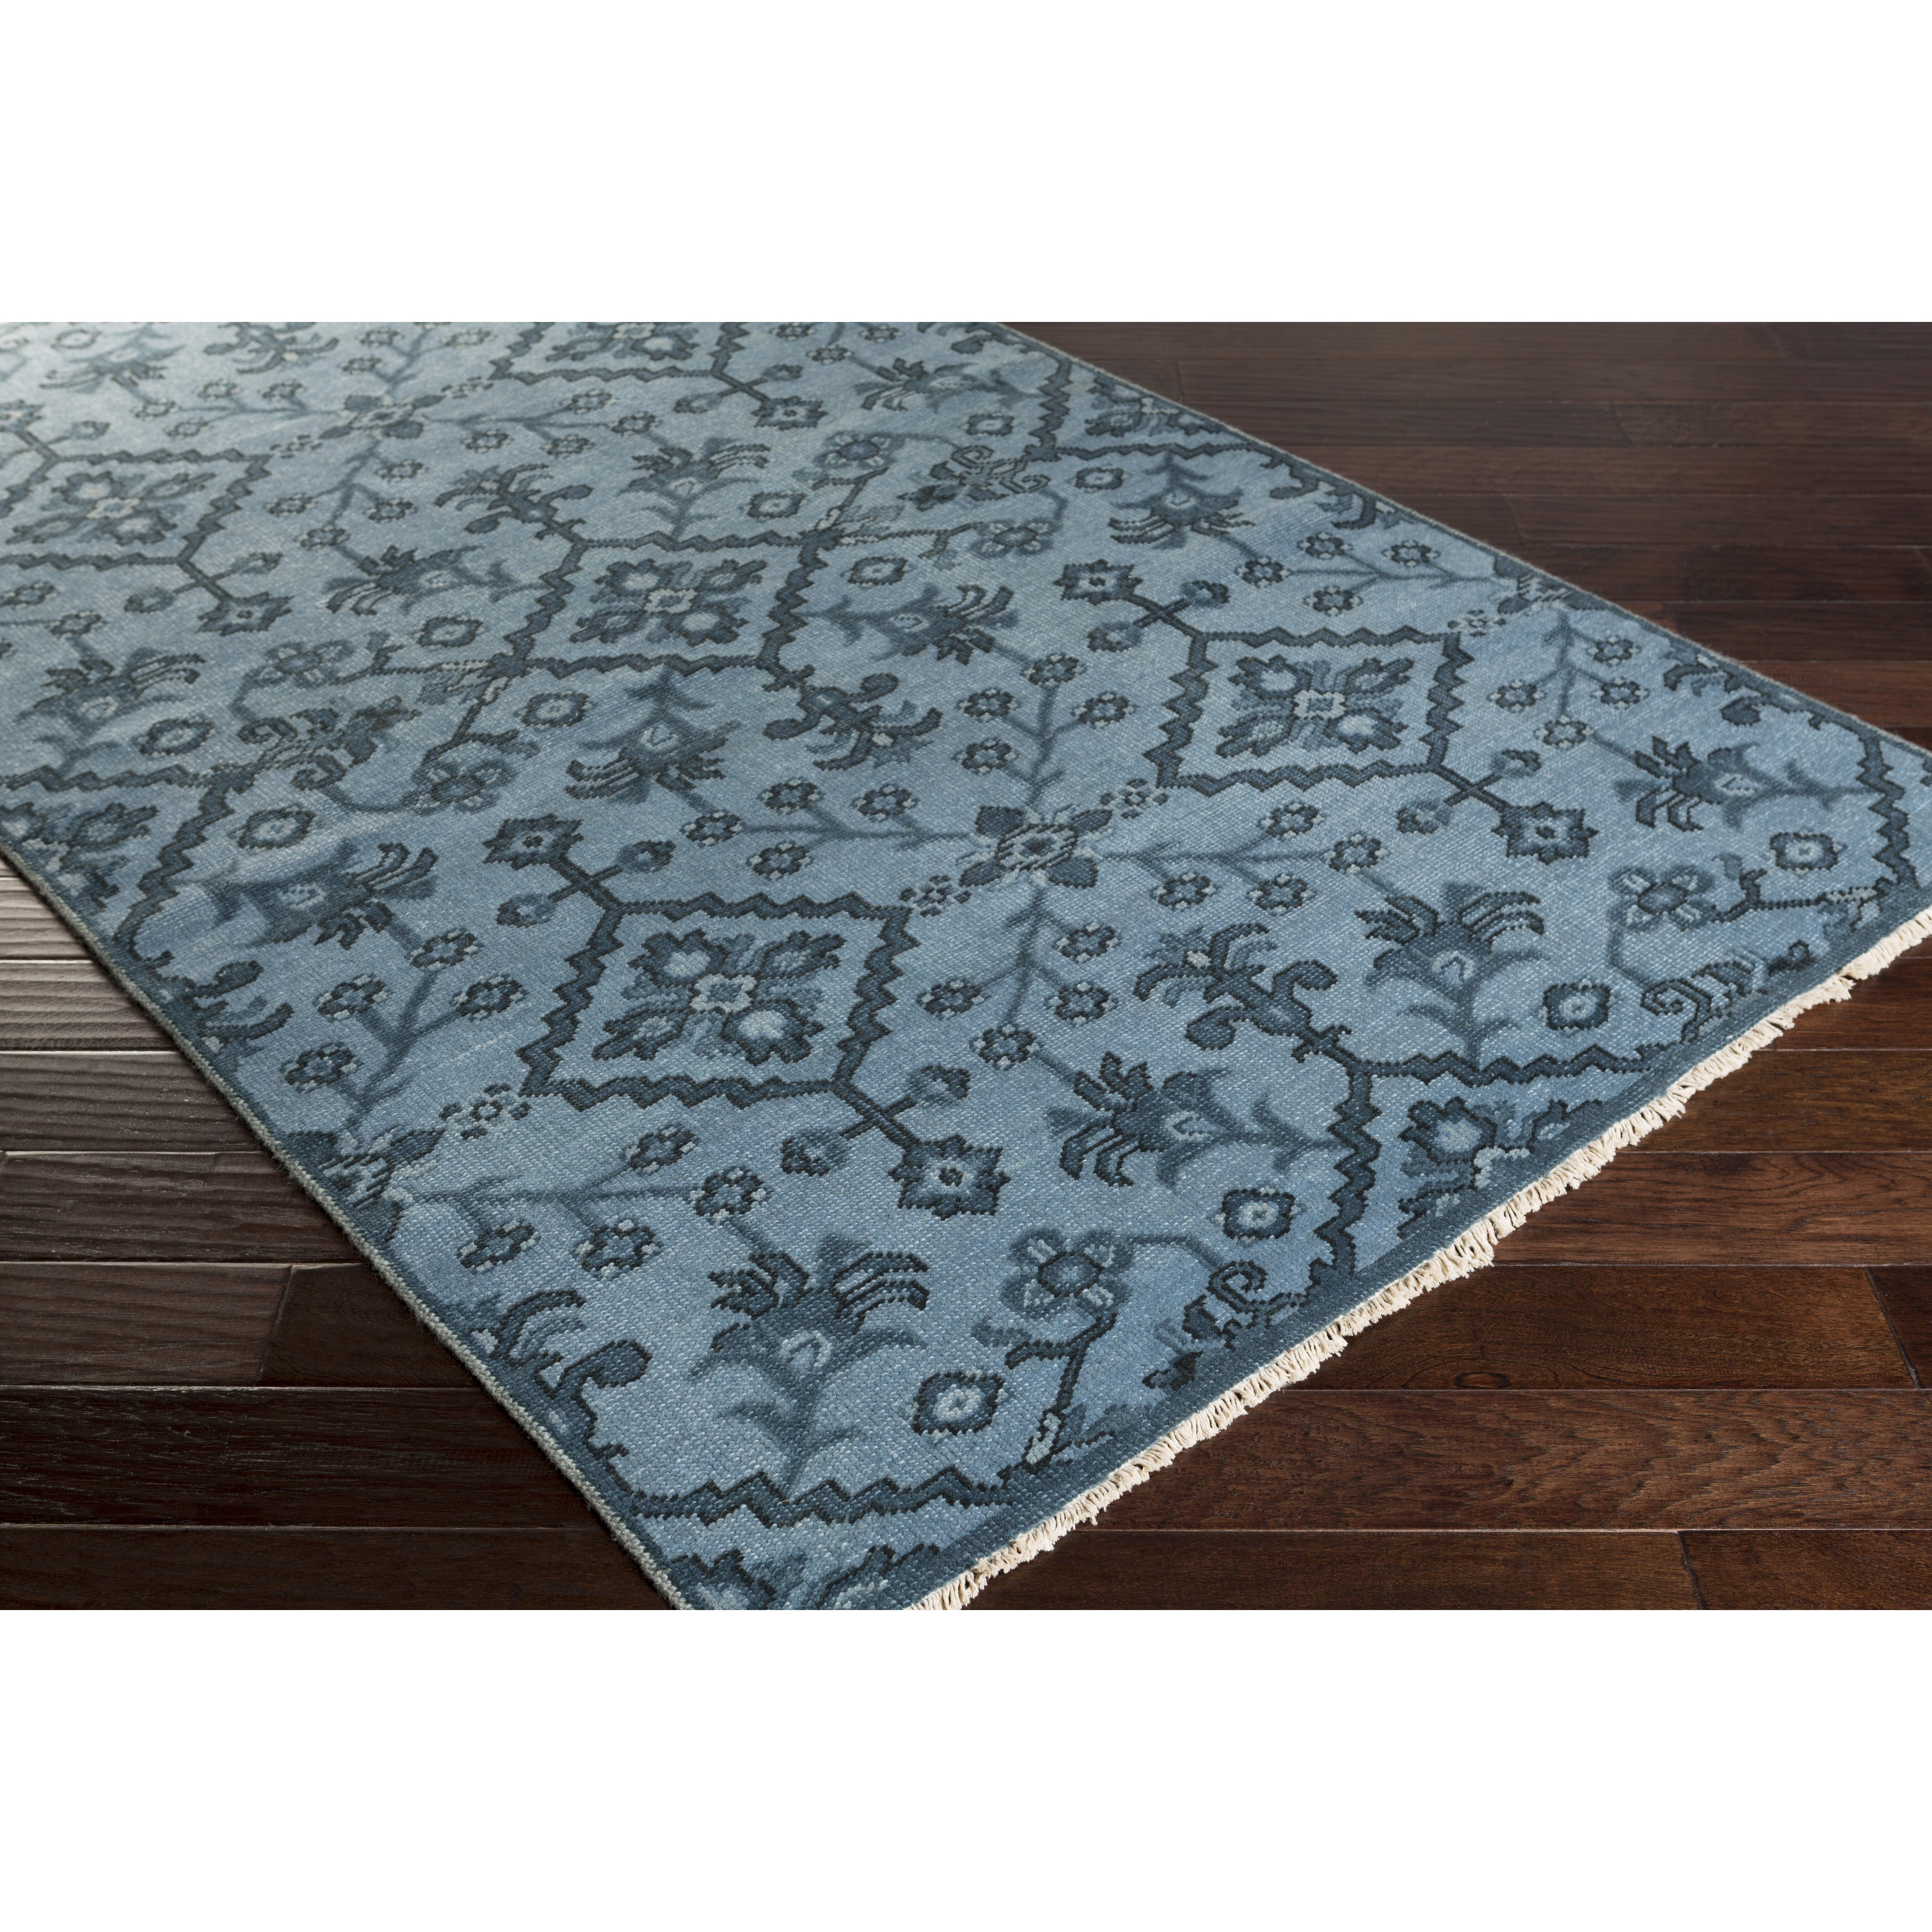 Shangrila Hand-Knotted Blue Area Rug